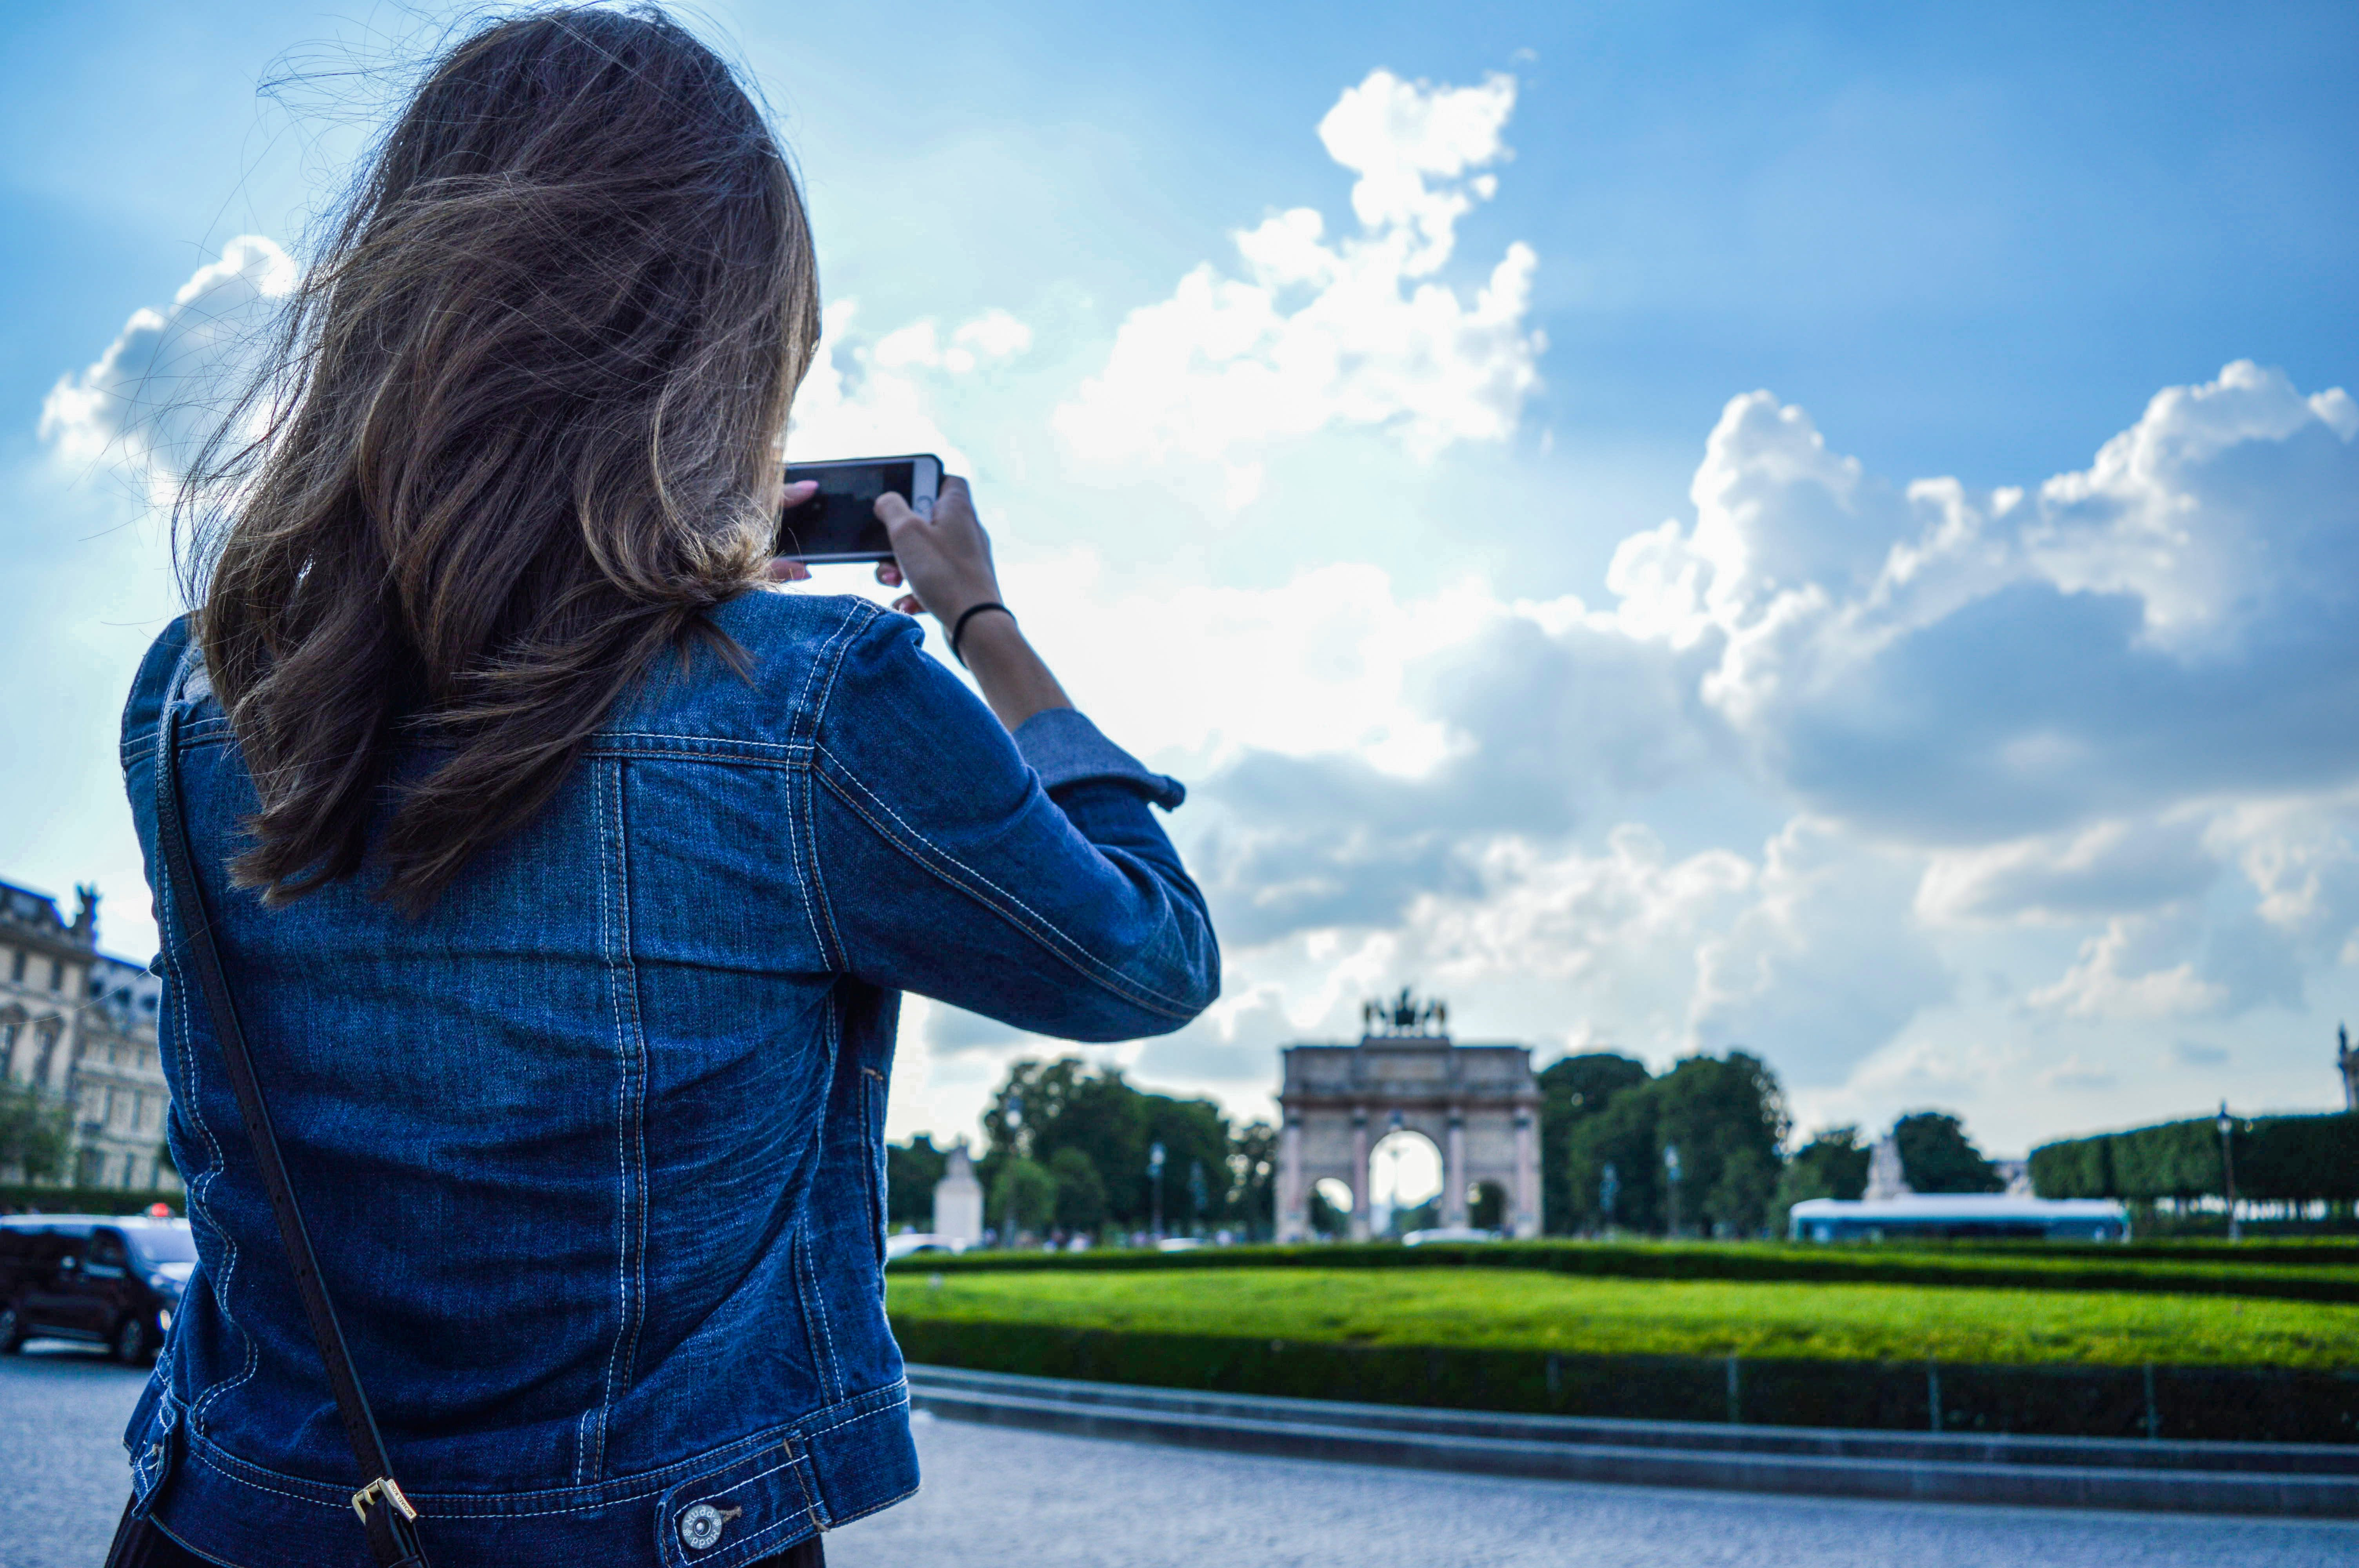 Woman Wearing Blue Denim Jacket Standing While Holding Smartphone